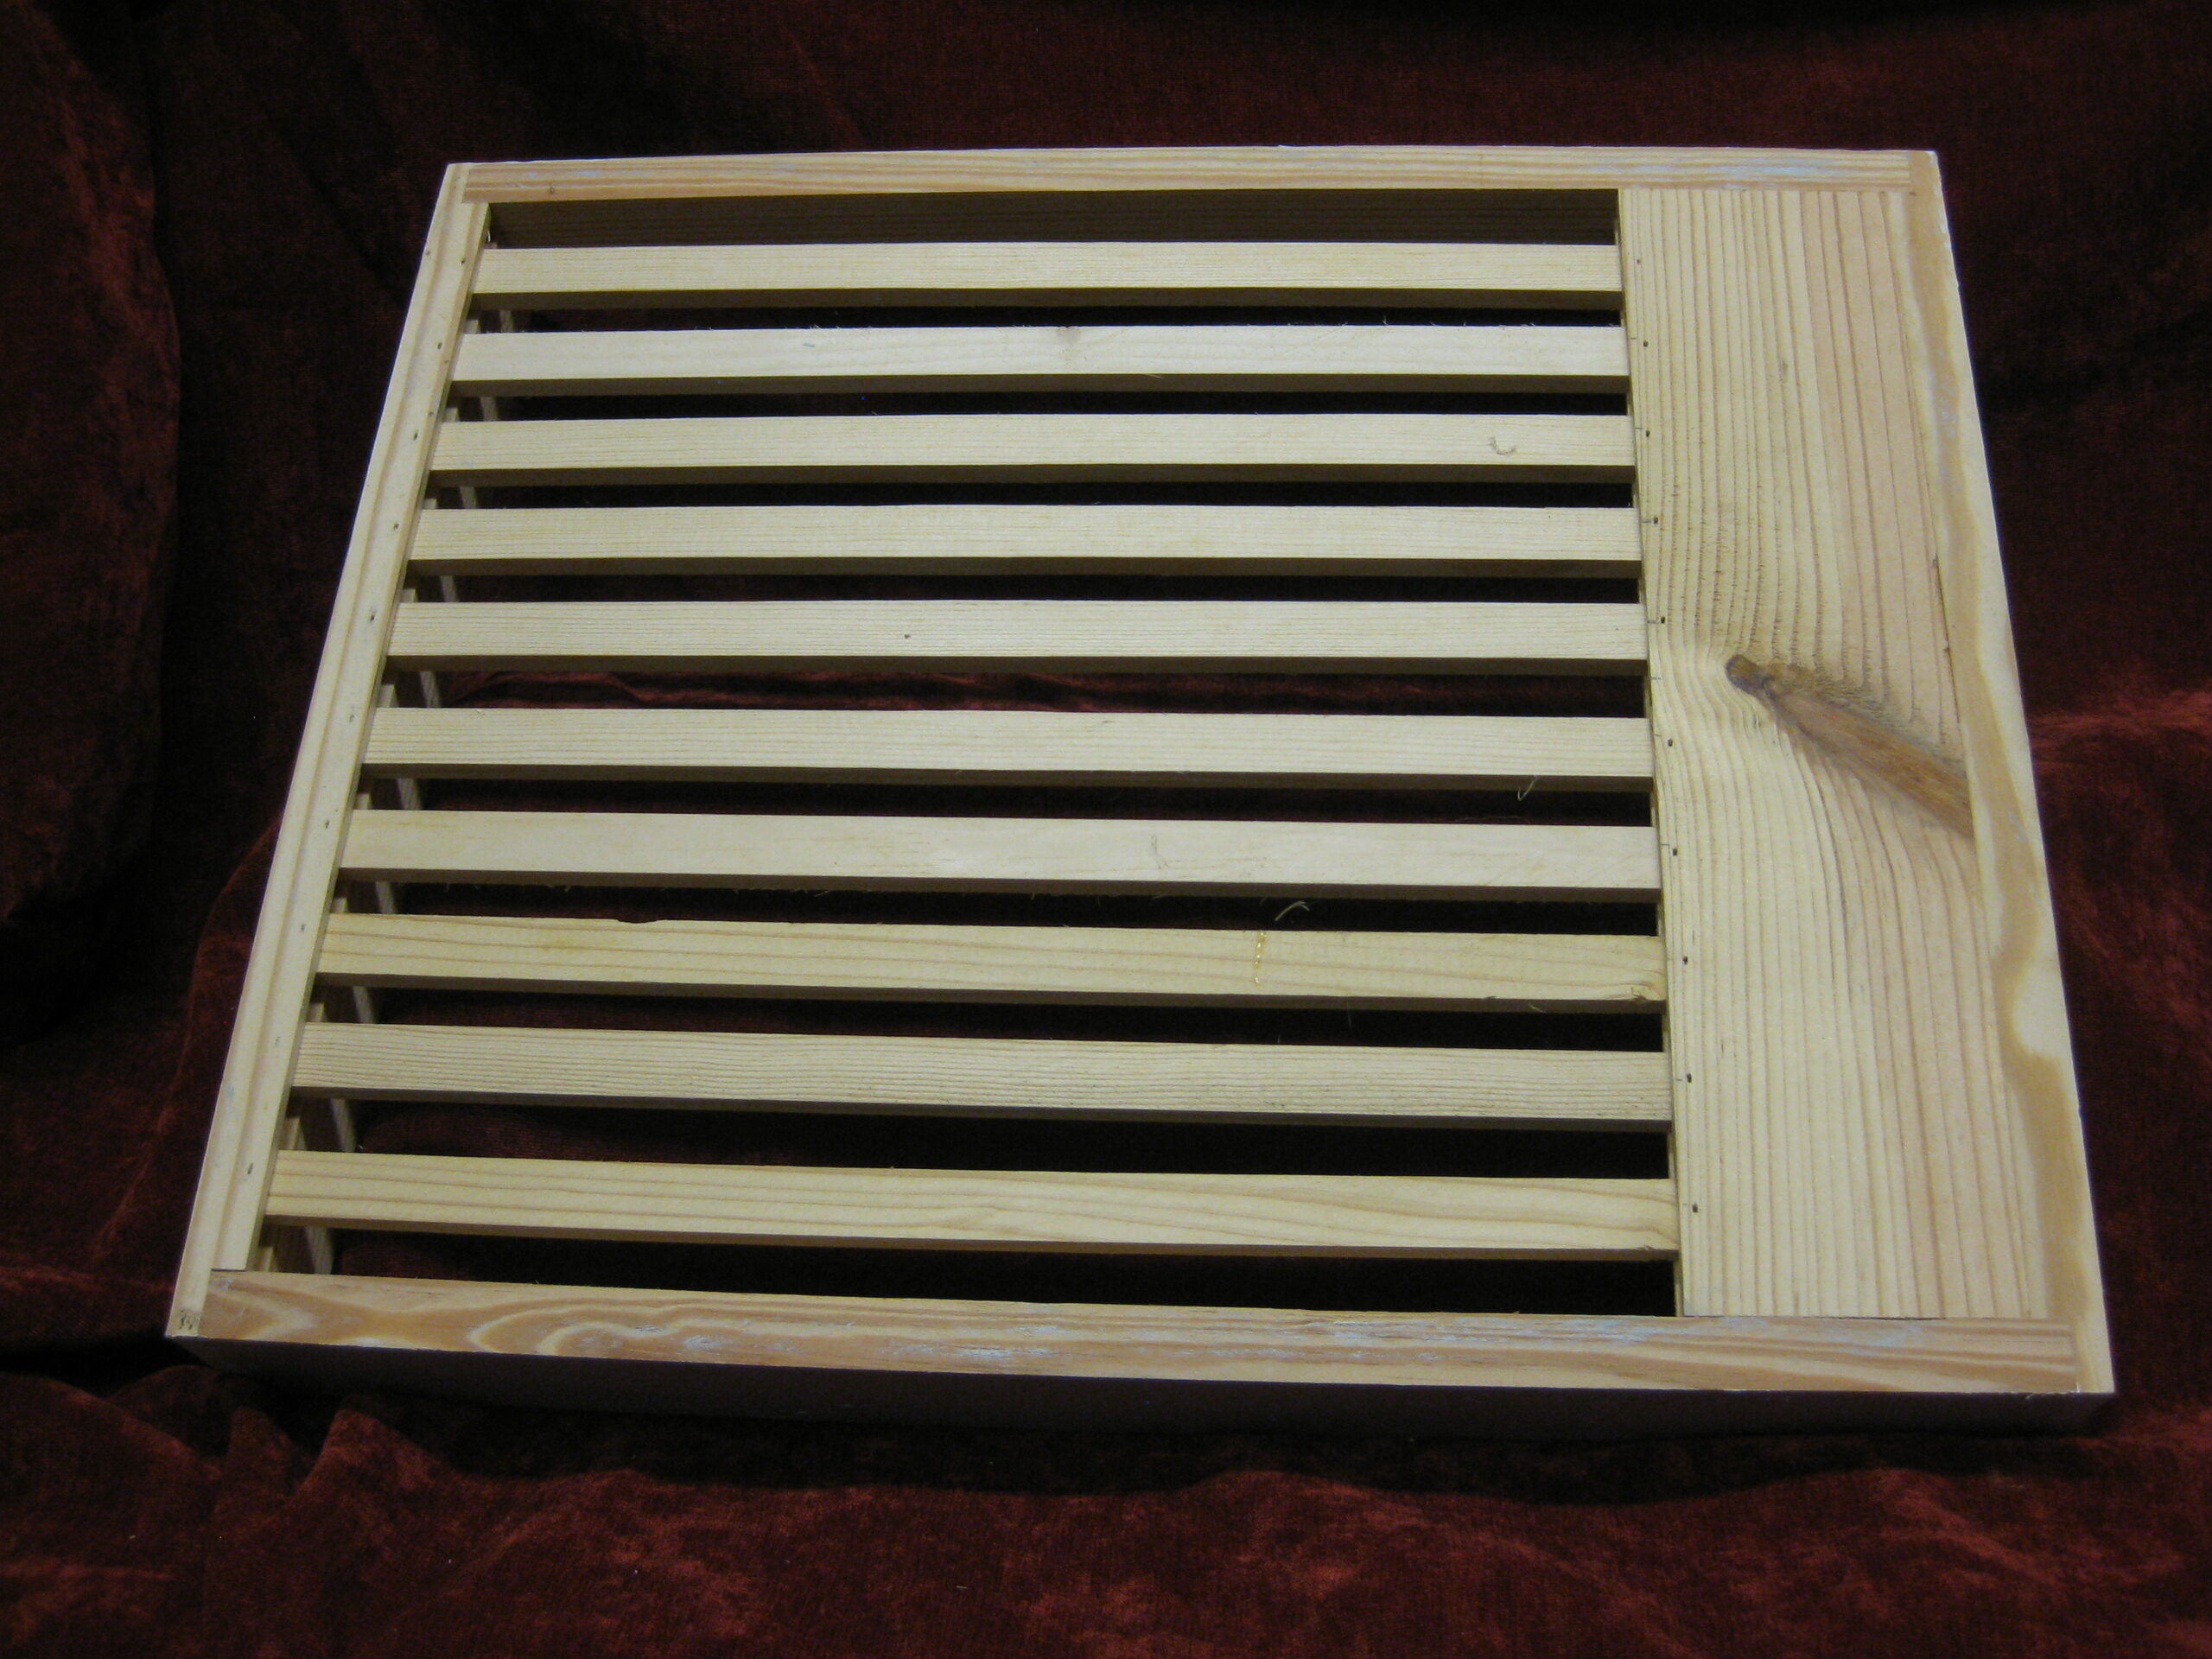 Hand Crafted Slatted Rack - 10-frame - gray